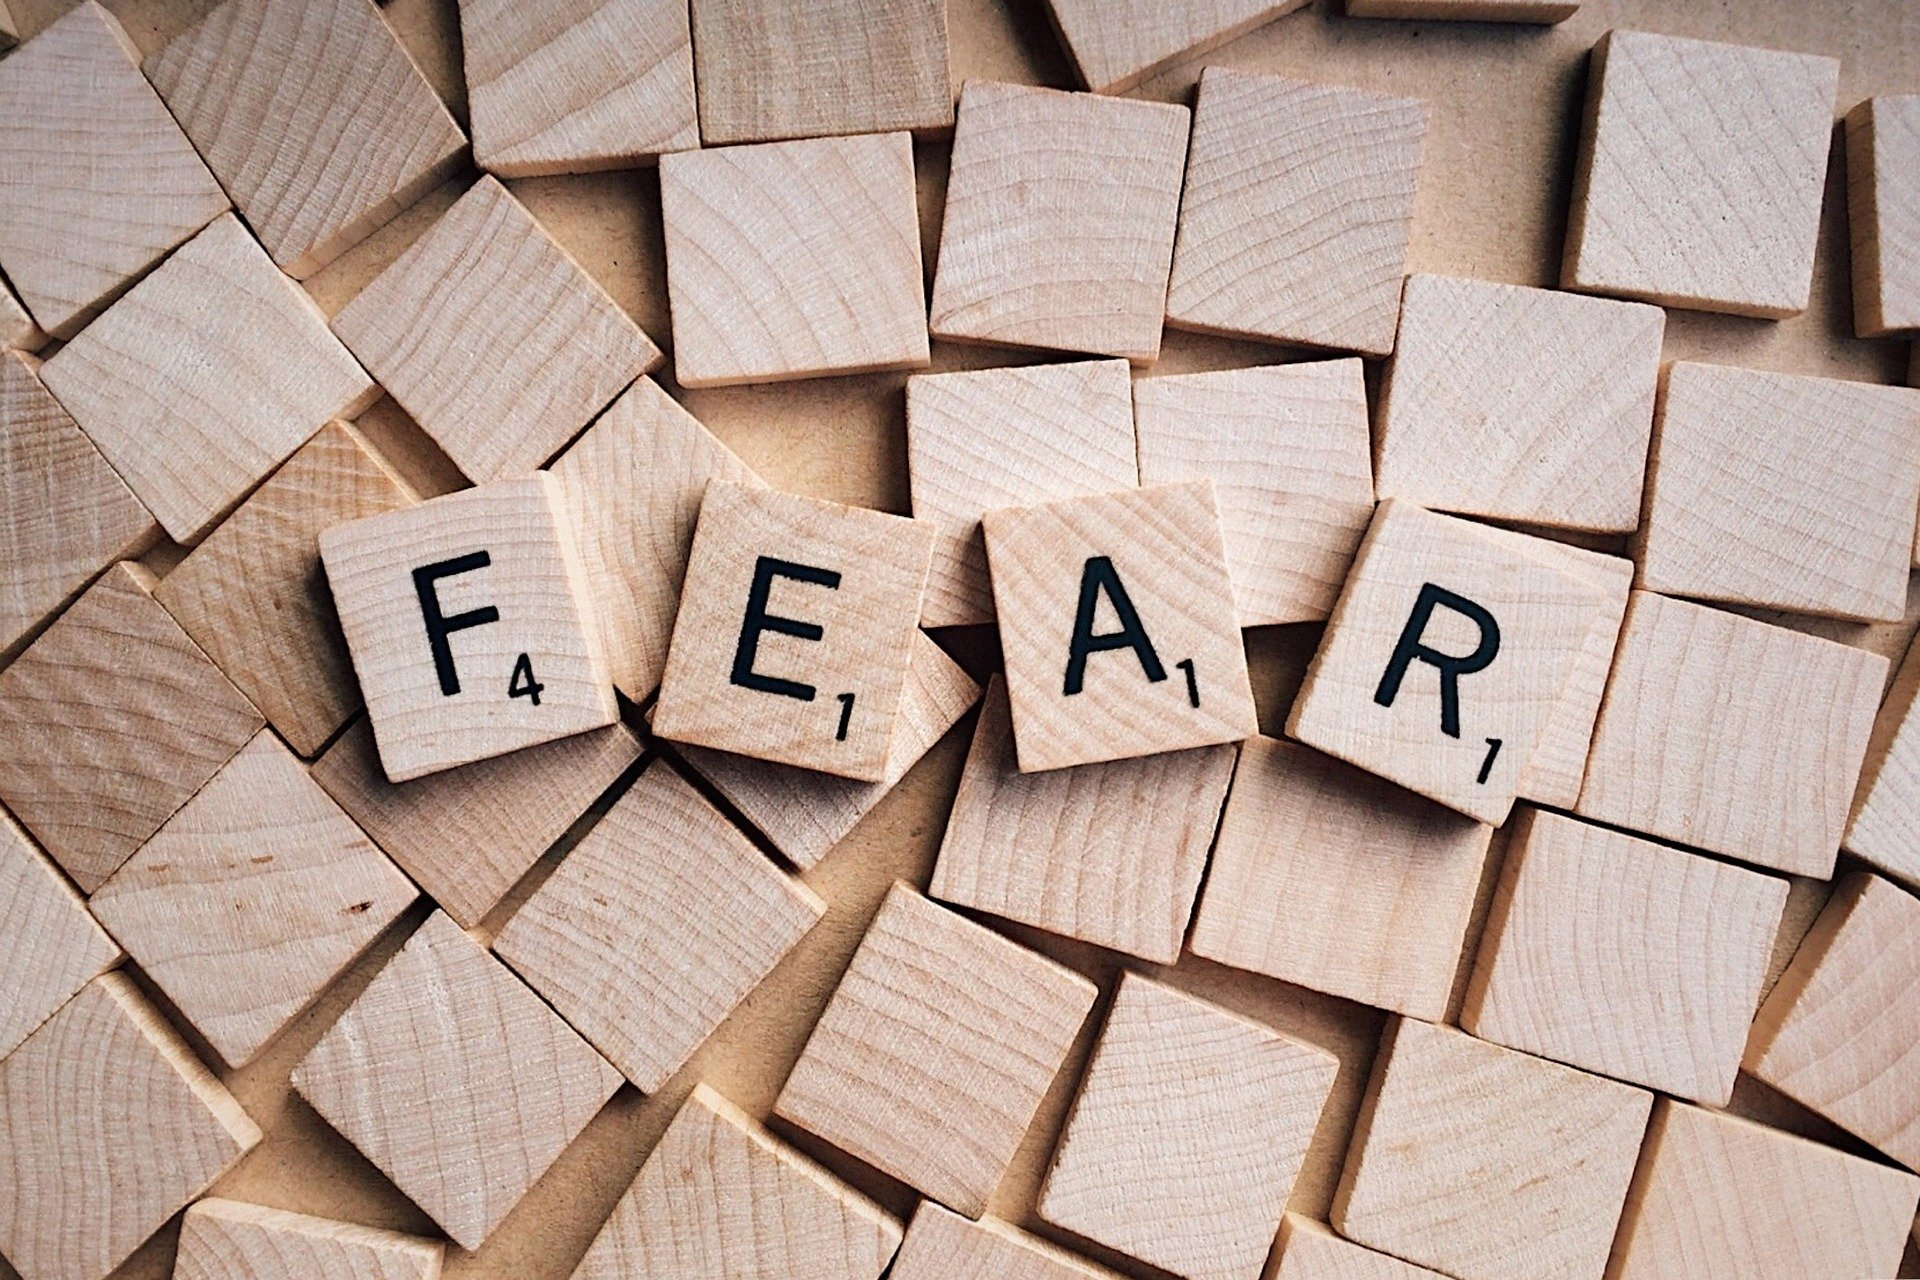 Lessons Learned – A Reflection on Fear